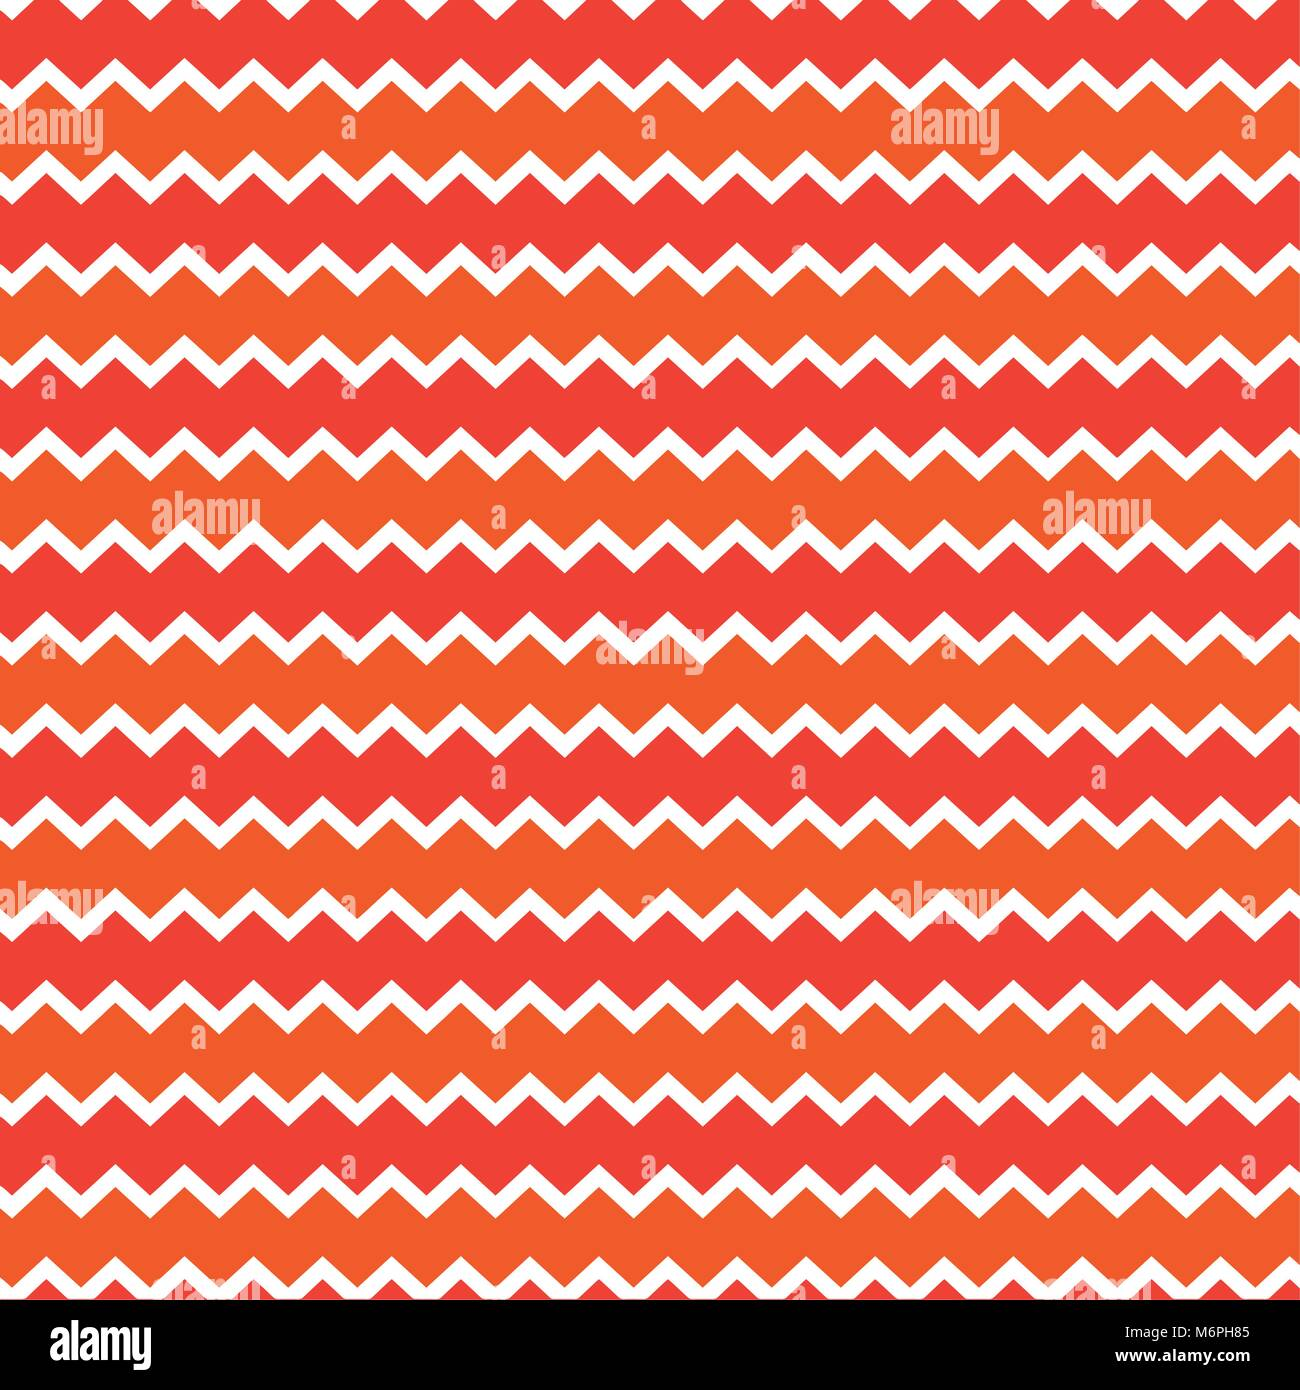 Retro Chevron Pattern Background With White Red And Orange Colors